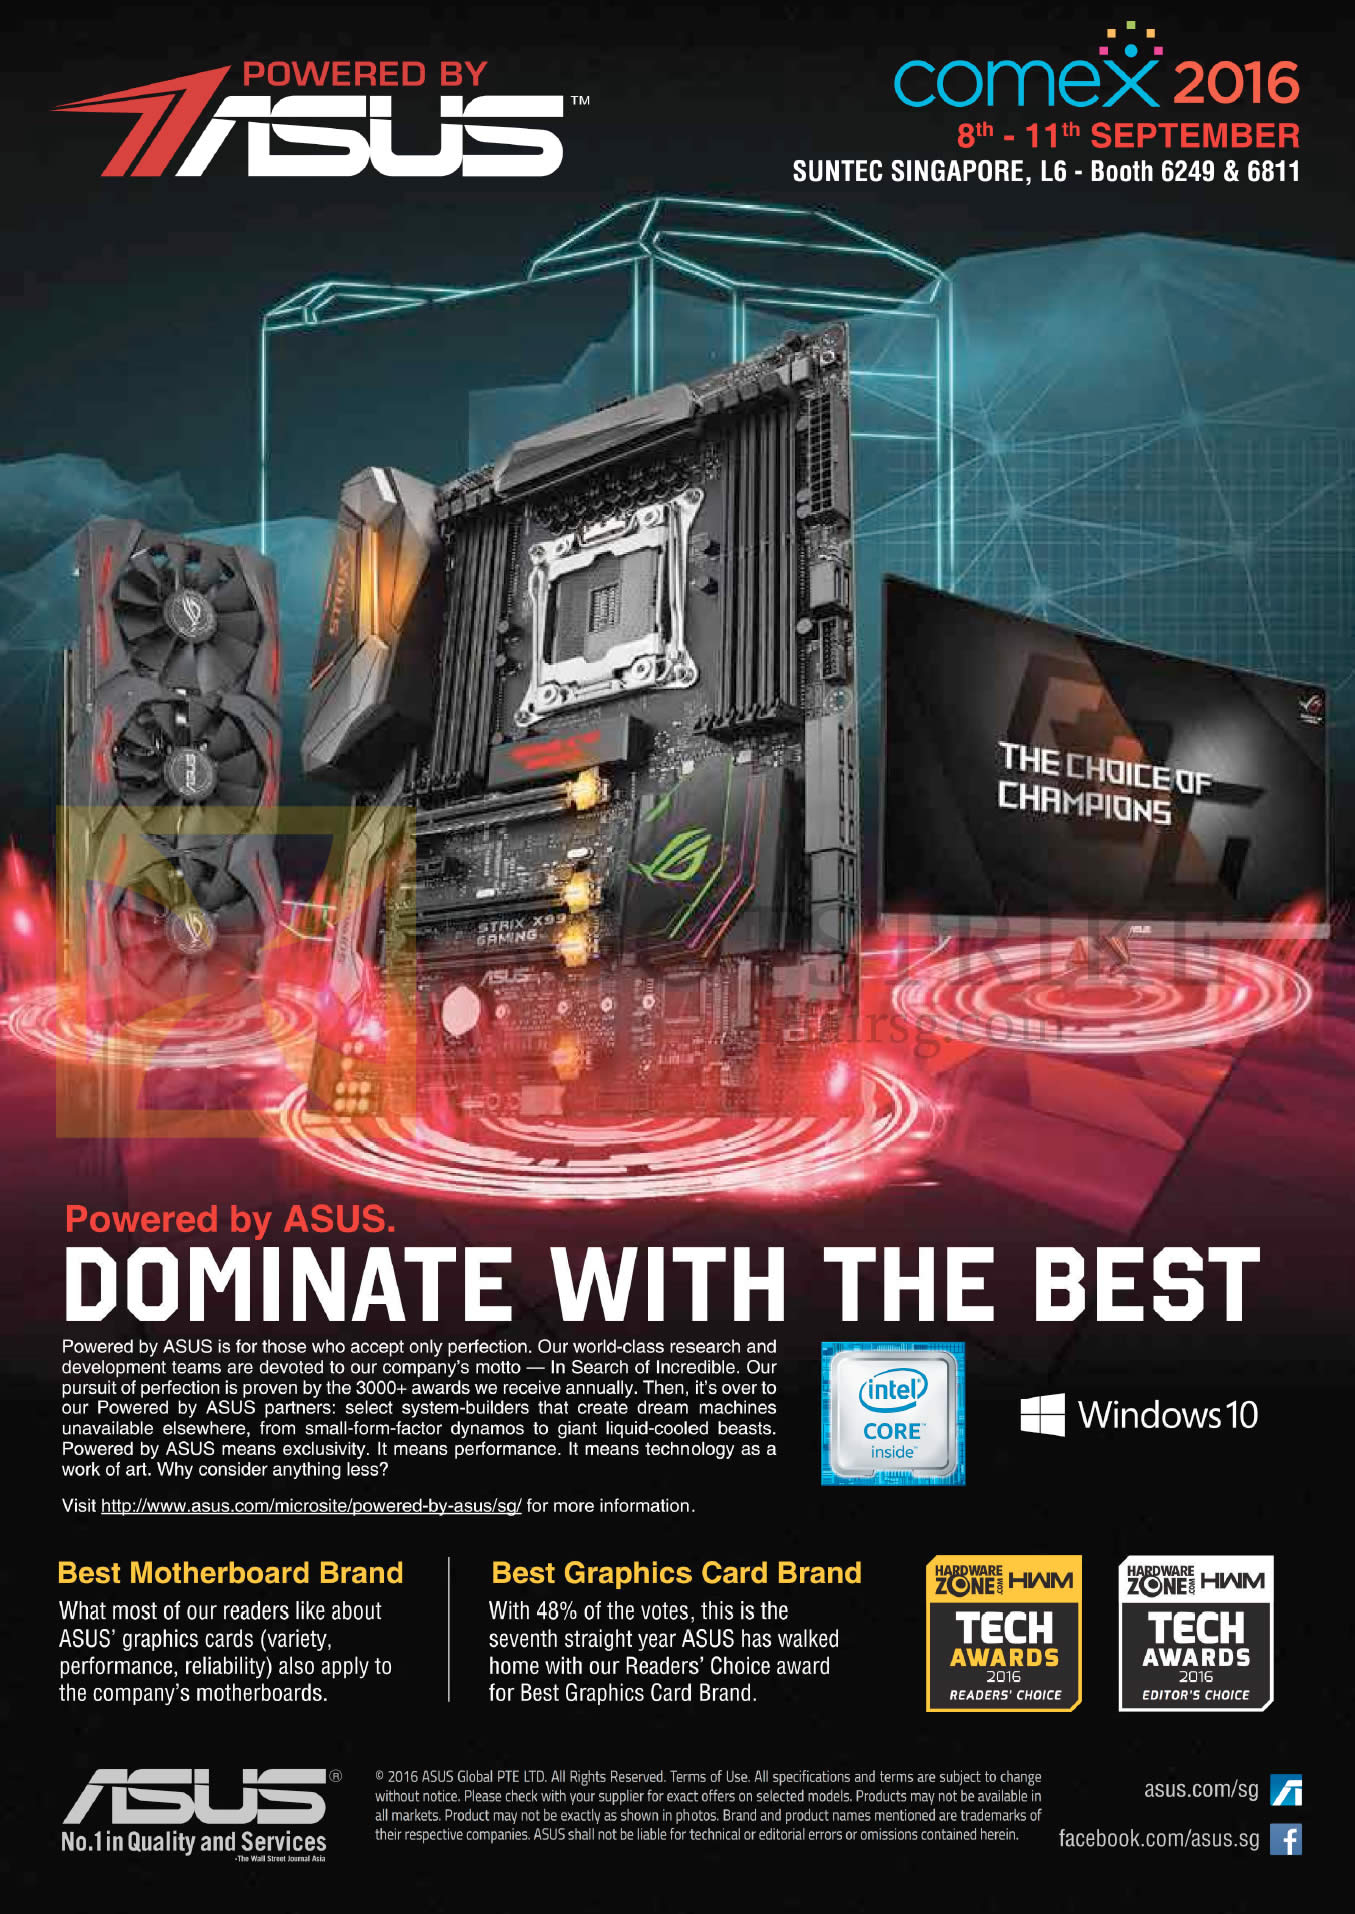 COMEX 2016 price list image brochure of Cybermind Powered By ASUS